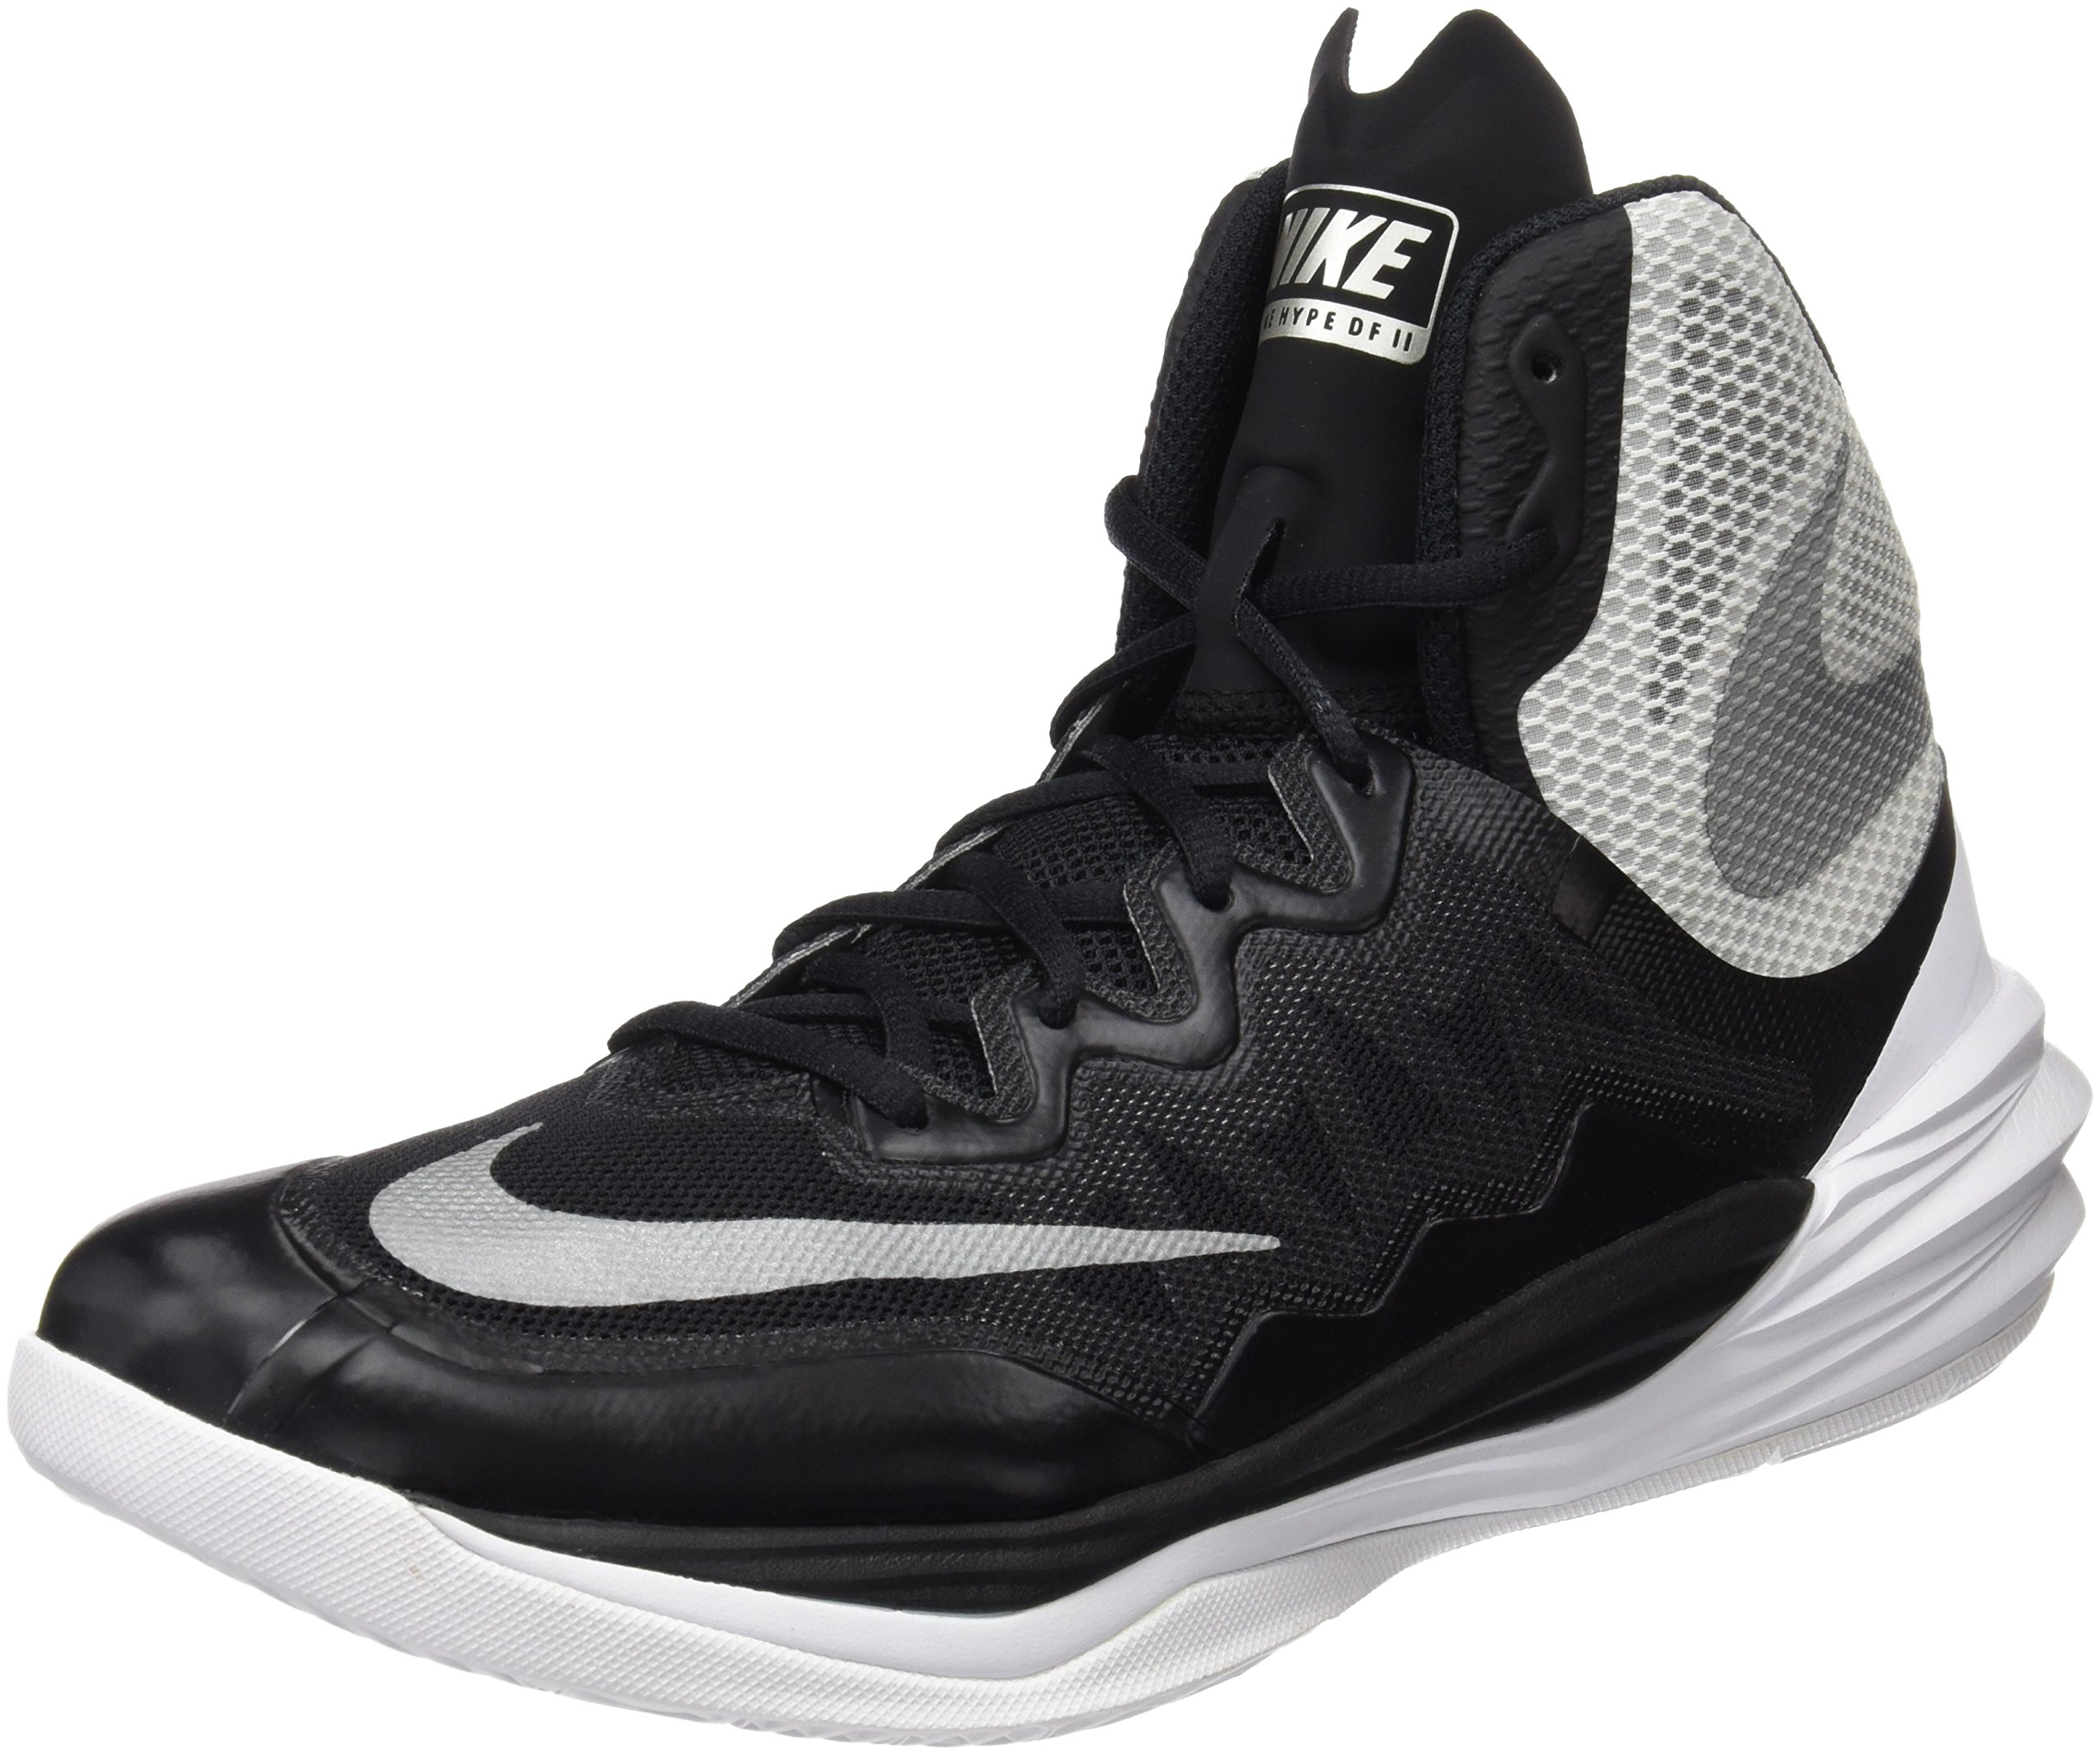 24fa5187798 Galleon - Nike Mens Prime Hype DF 2016 Basketball Shoes Black Silver White  806941-001 Size 10.5